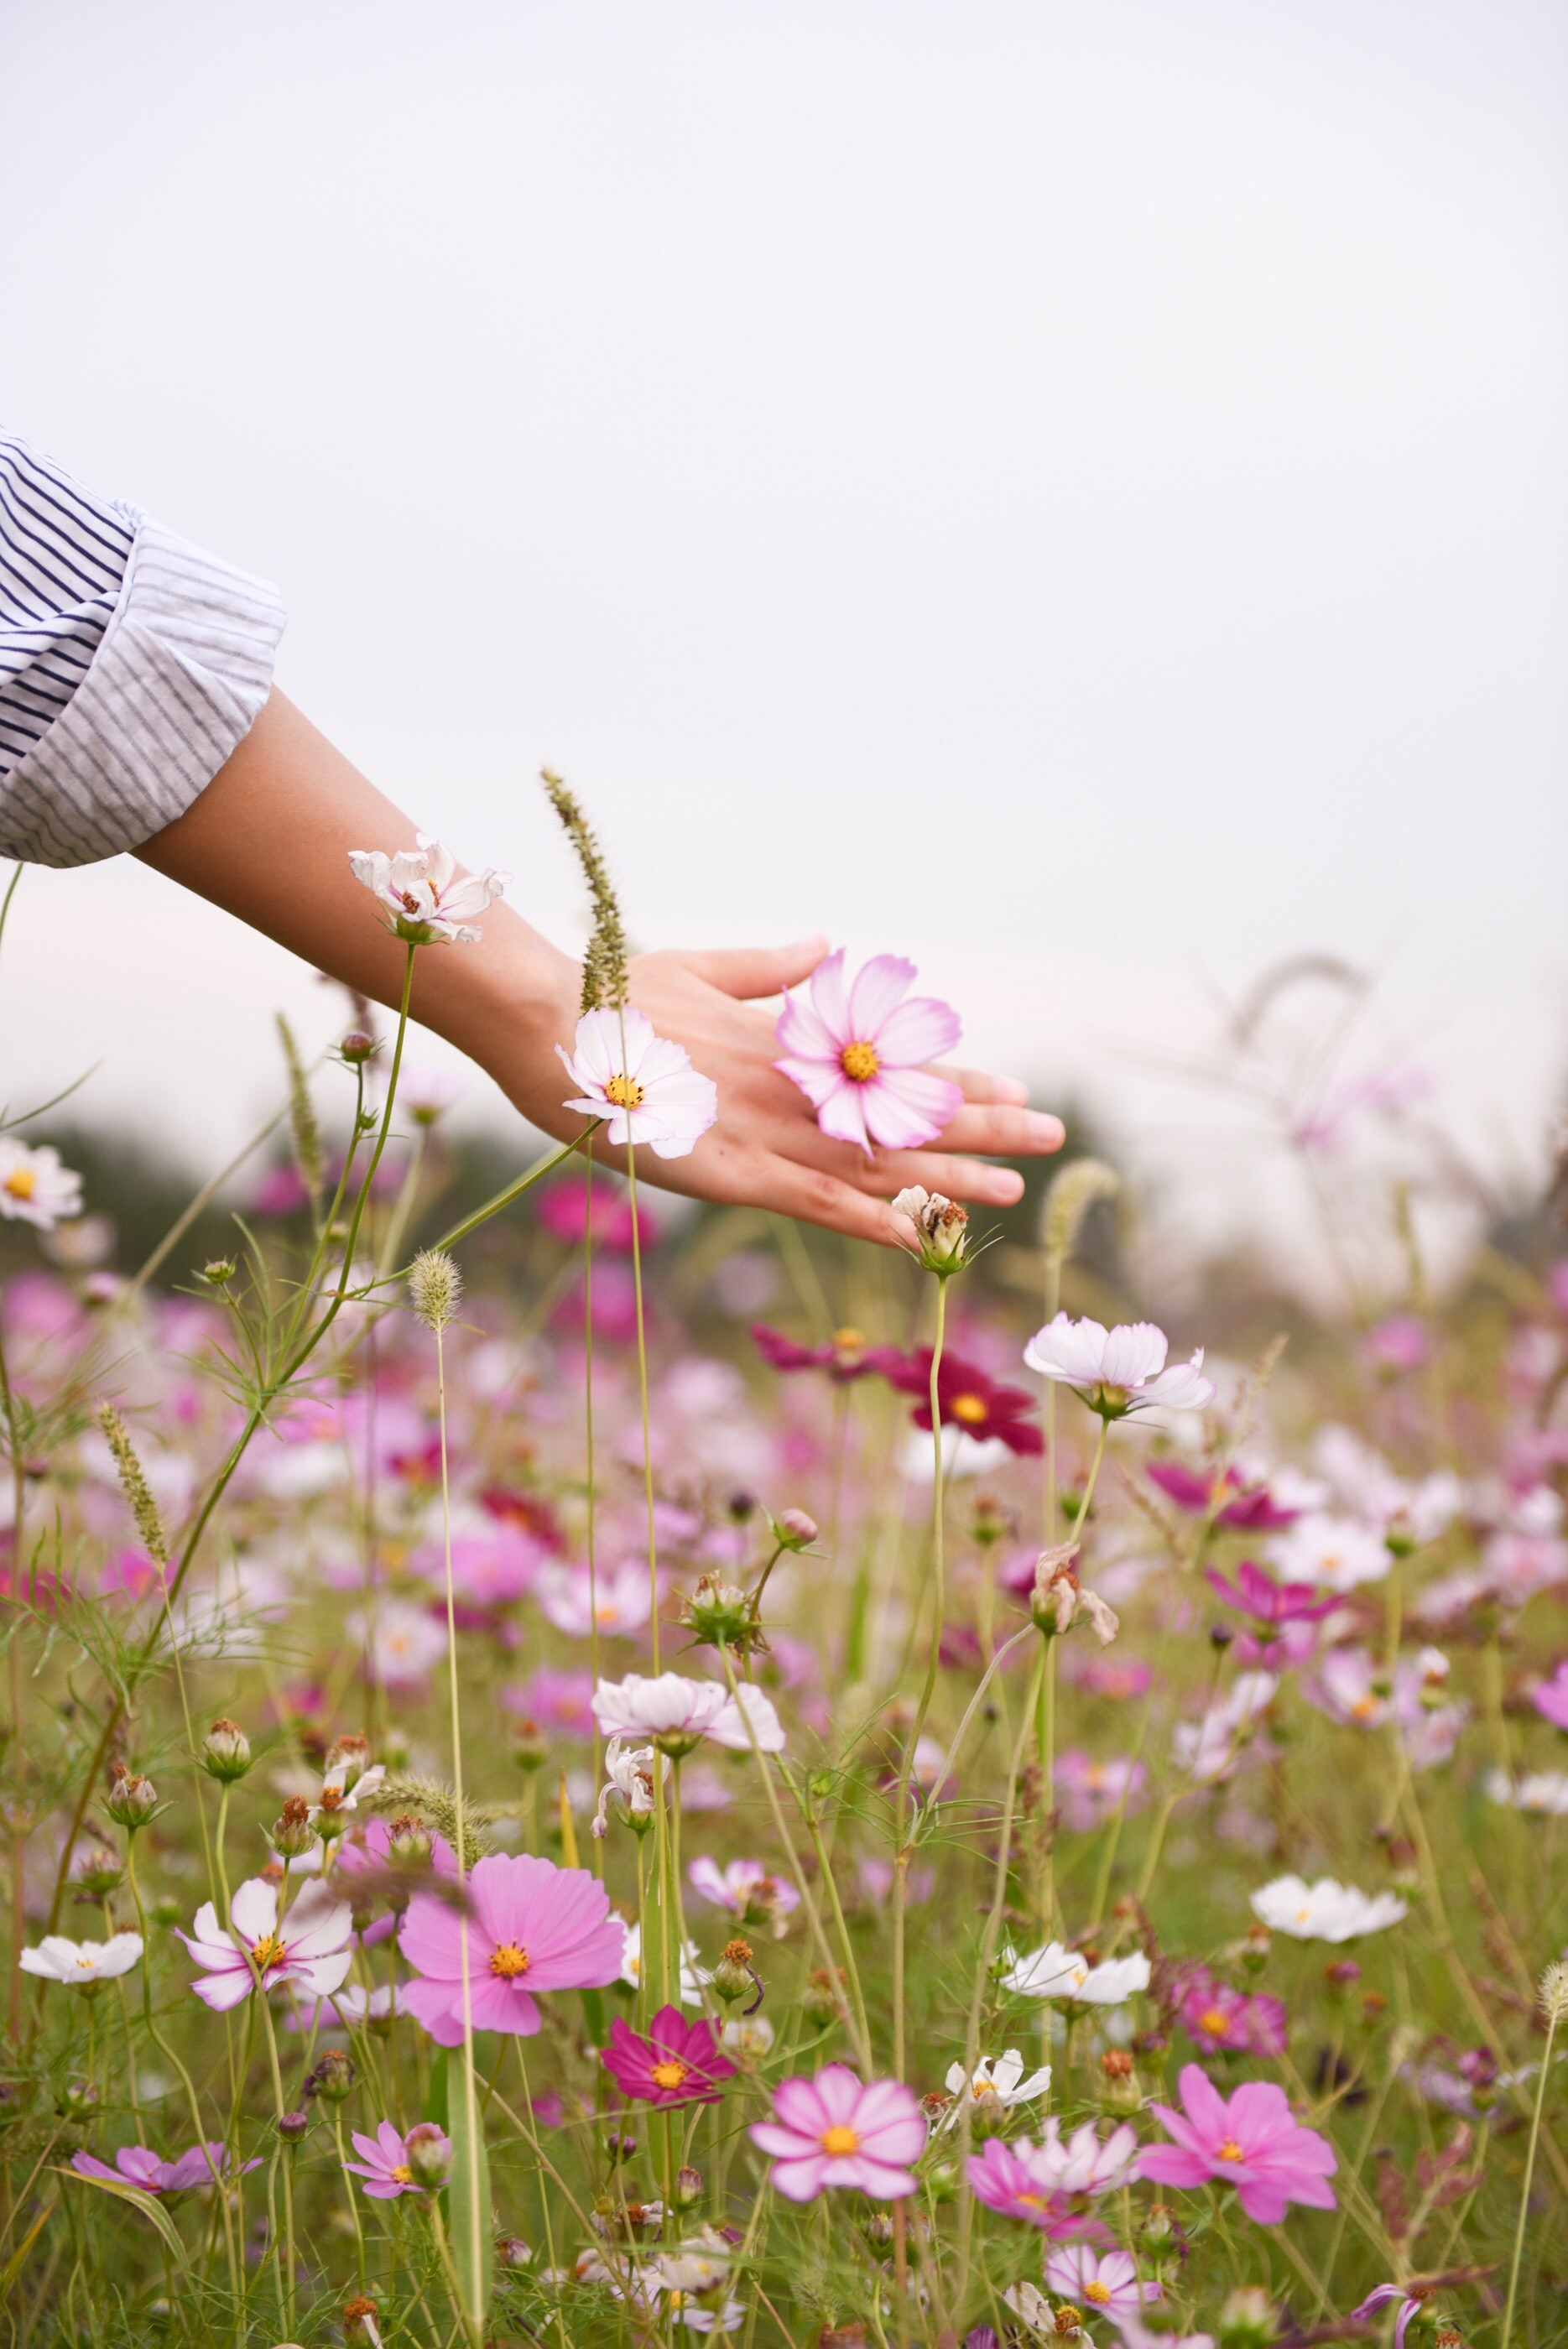 A woman's hand gently touching a pink flower in the meadow